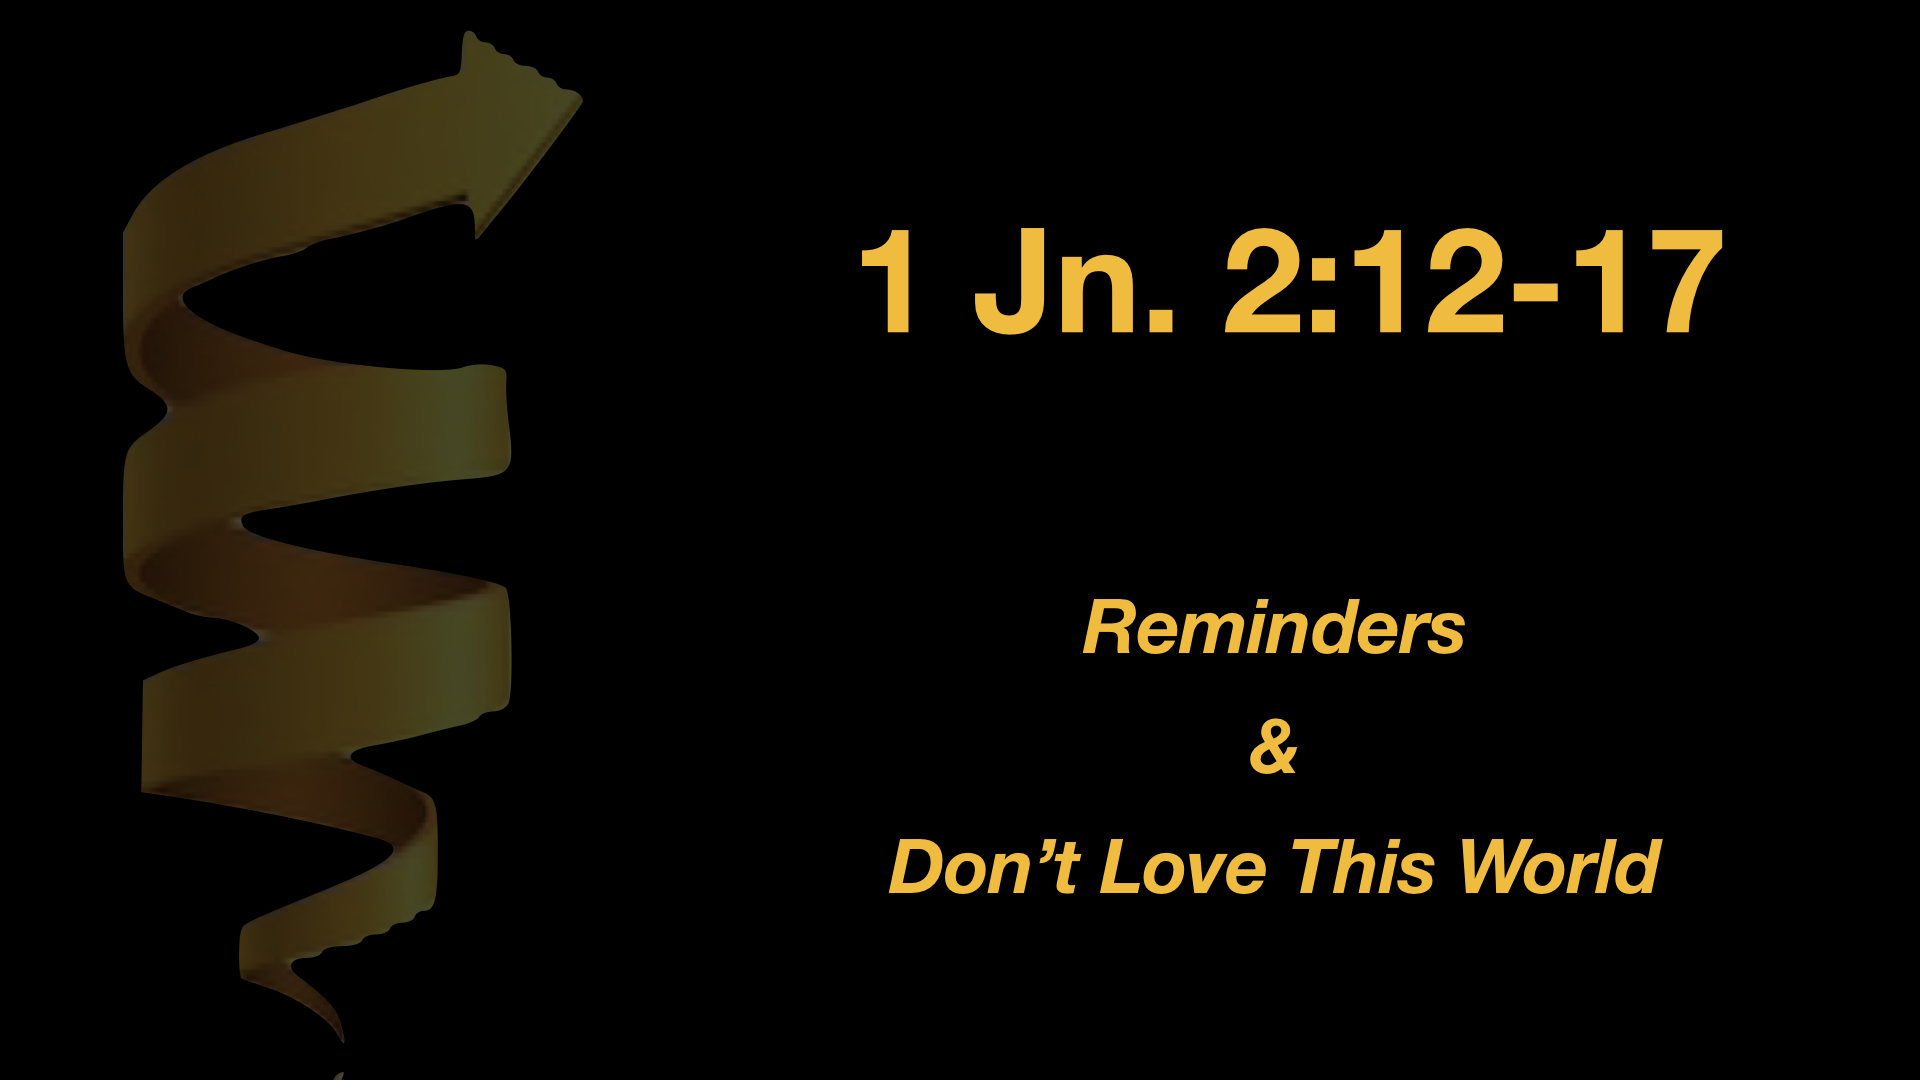 1 John 2;12-17 Reminders & Don't Love This World WIDE.jpeg